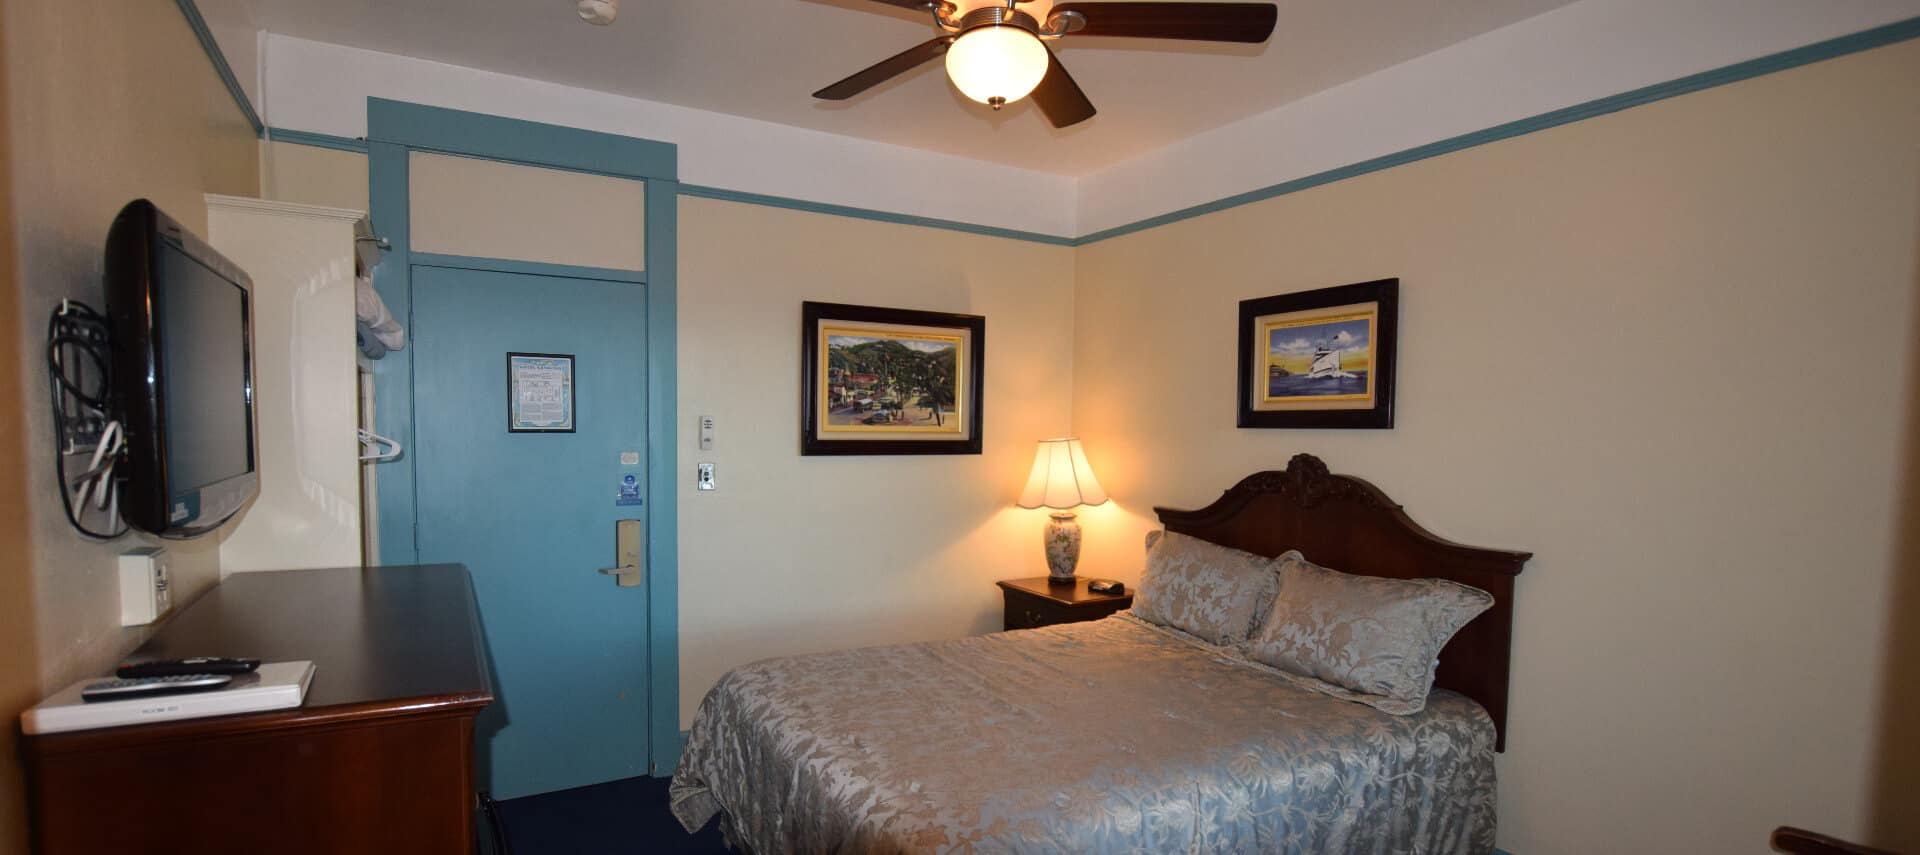 Room painted in pale yellow with blur trim holds a queen bed and a ceiling fan.